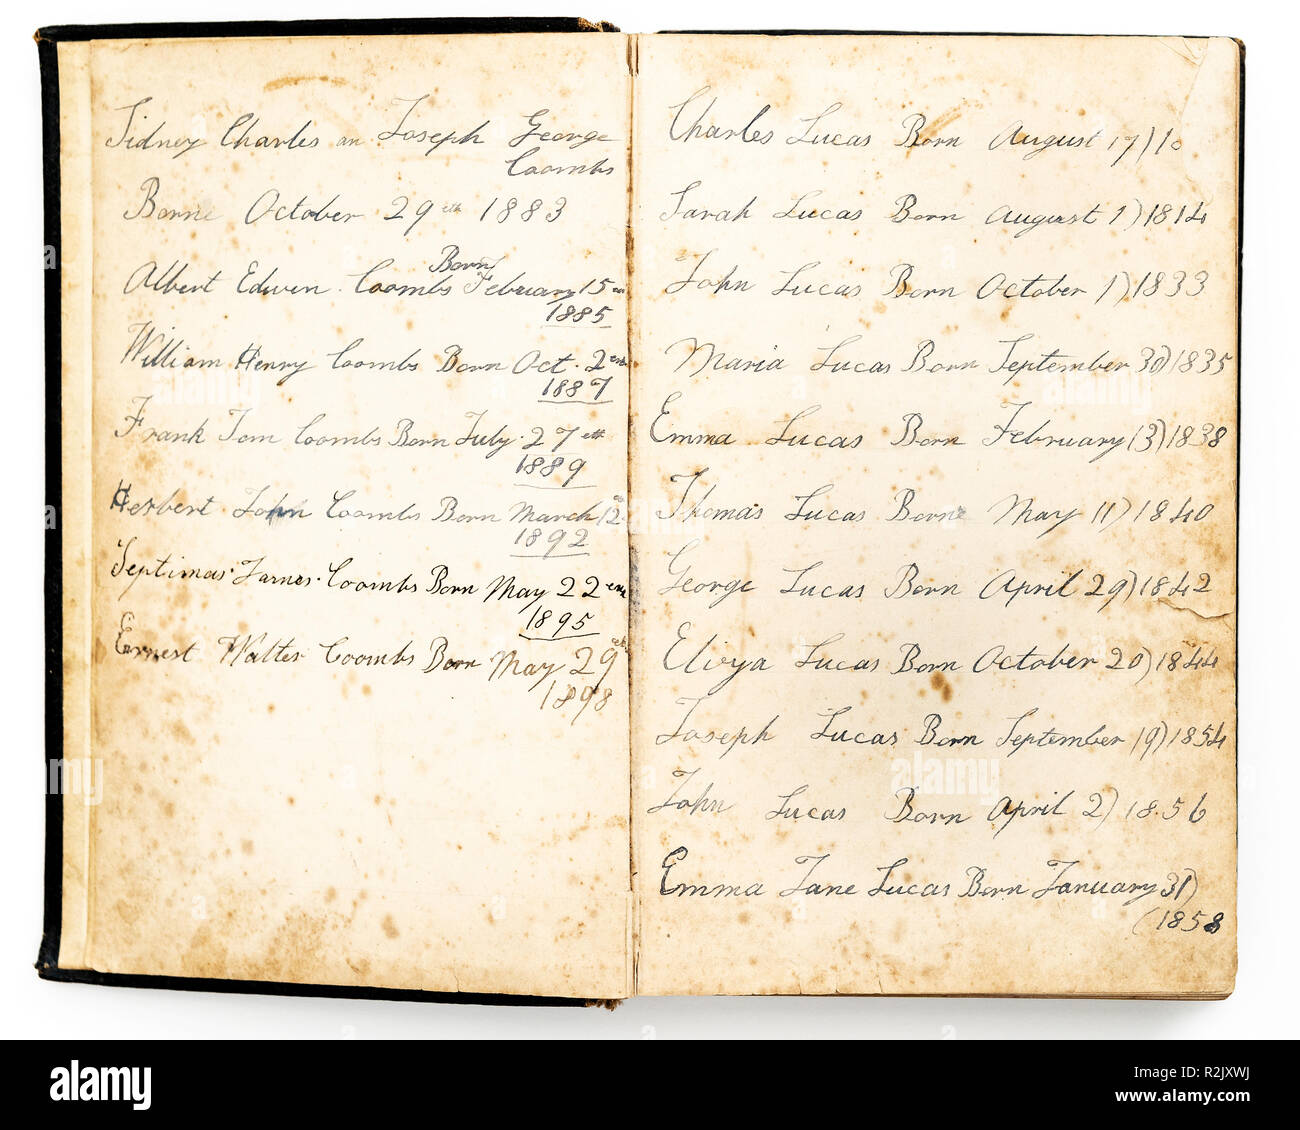 19th century family birth dates recorded in hand writing in an old family bible - Stock Image